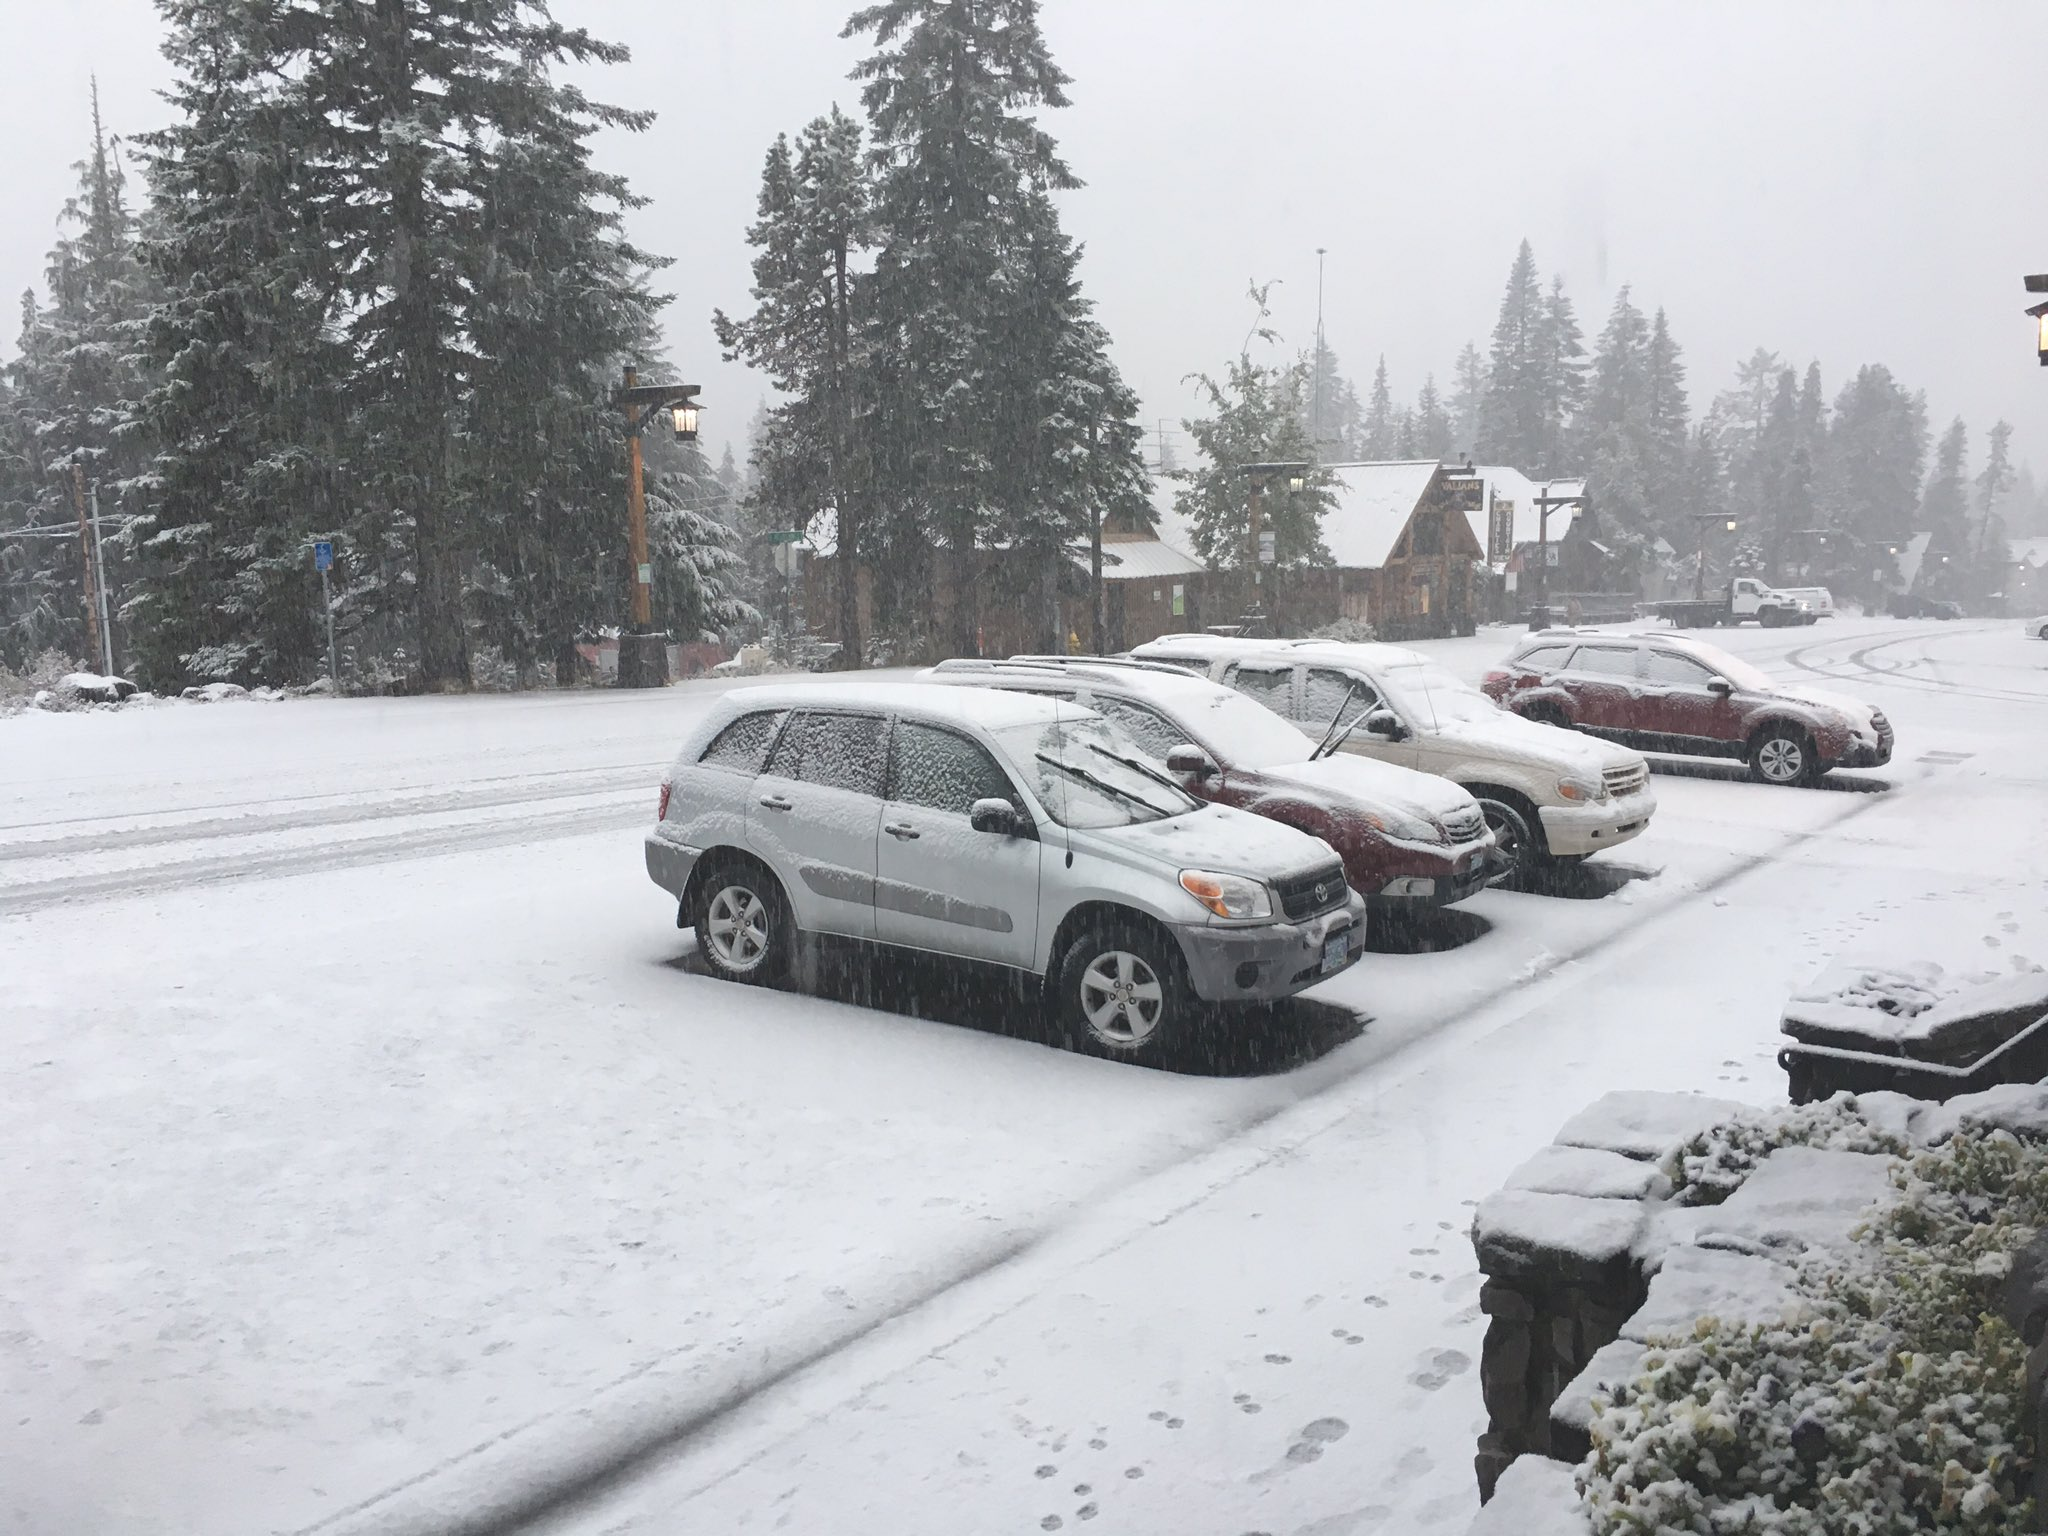 Snow at Timberline Lodge on Oct. 12, 2017 (SBG photo)